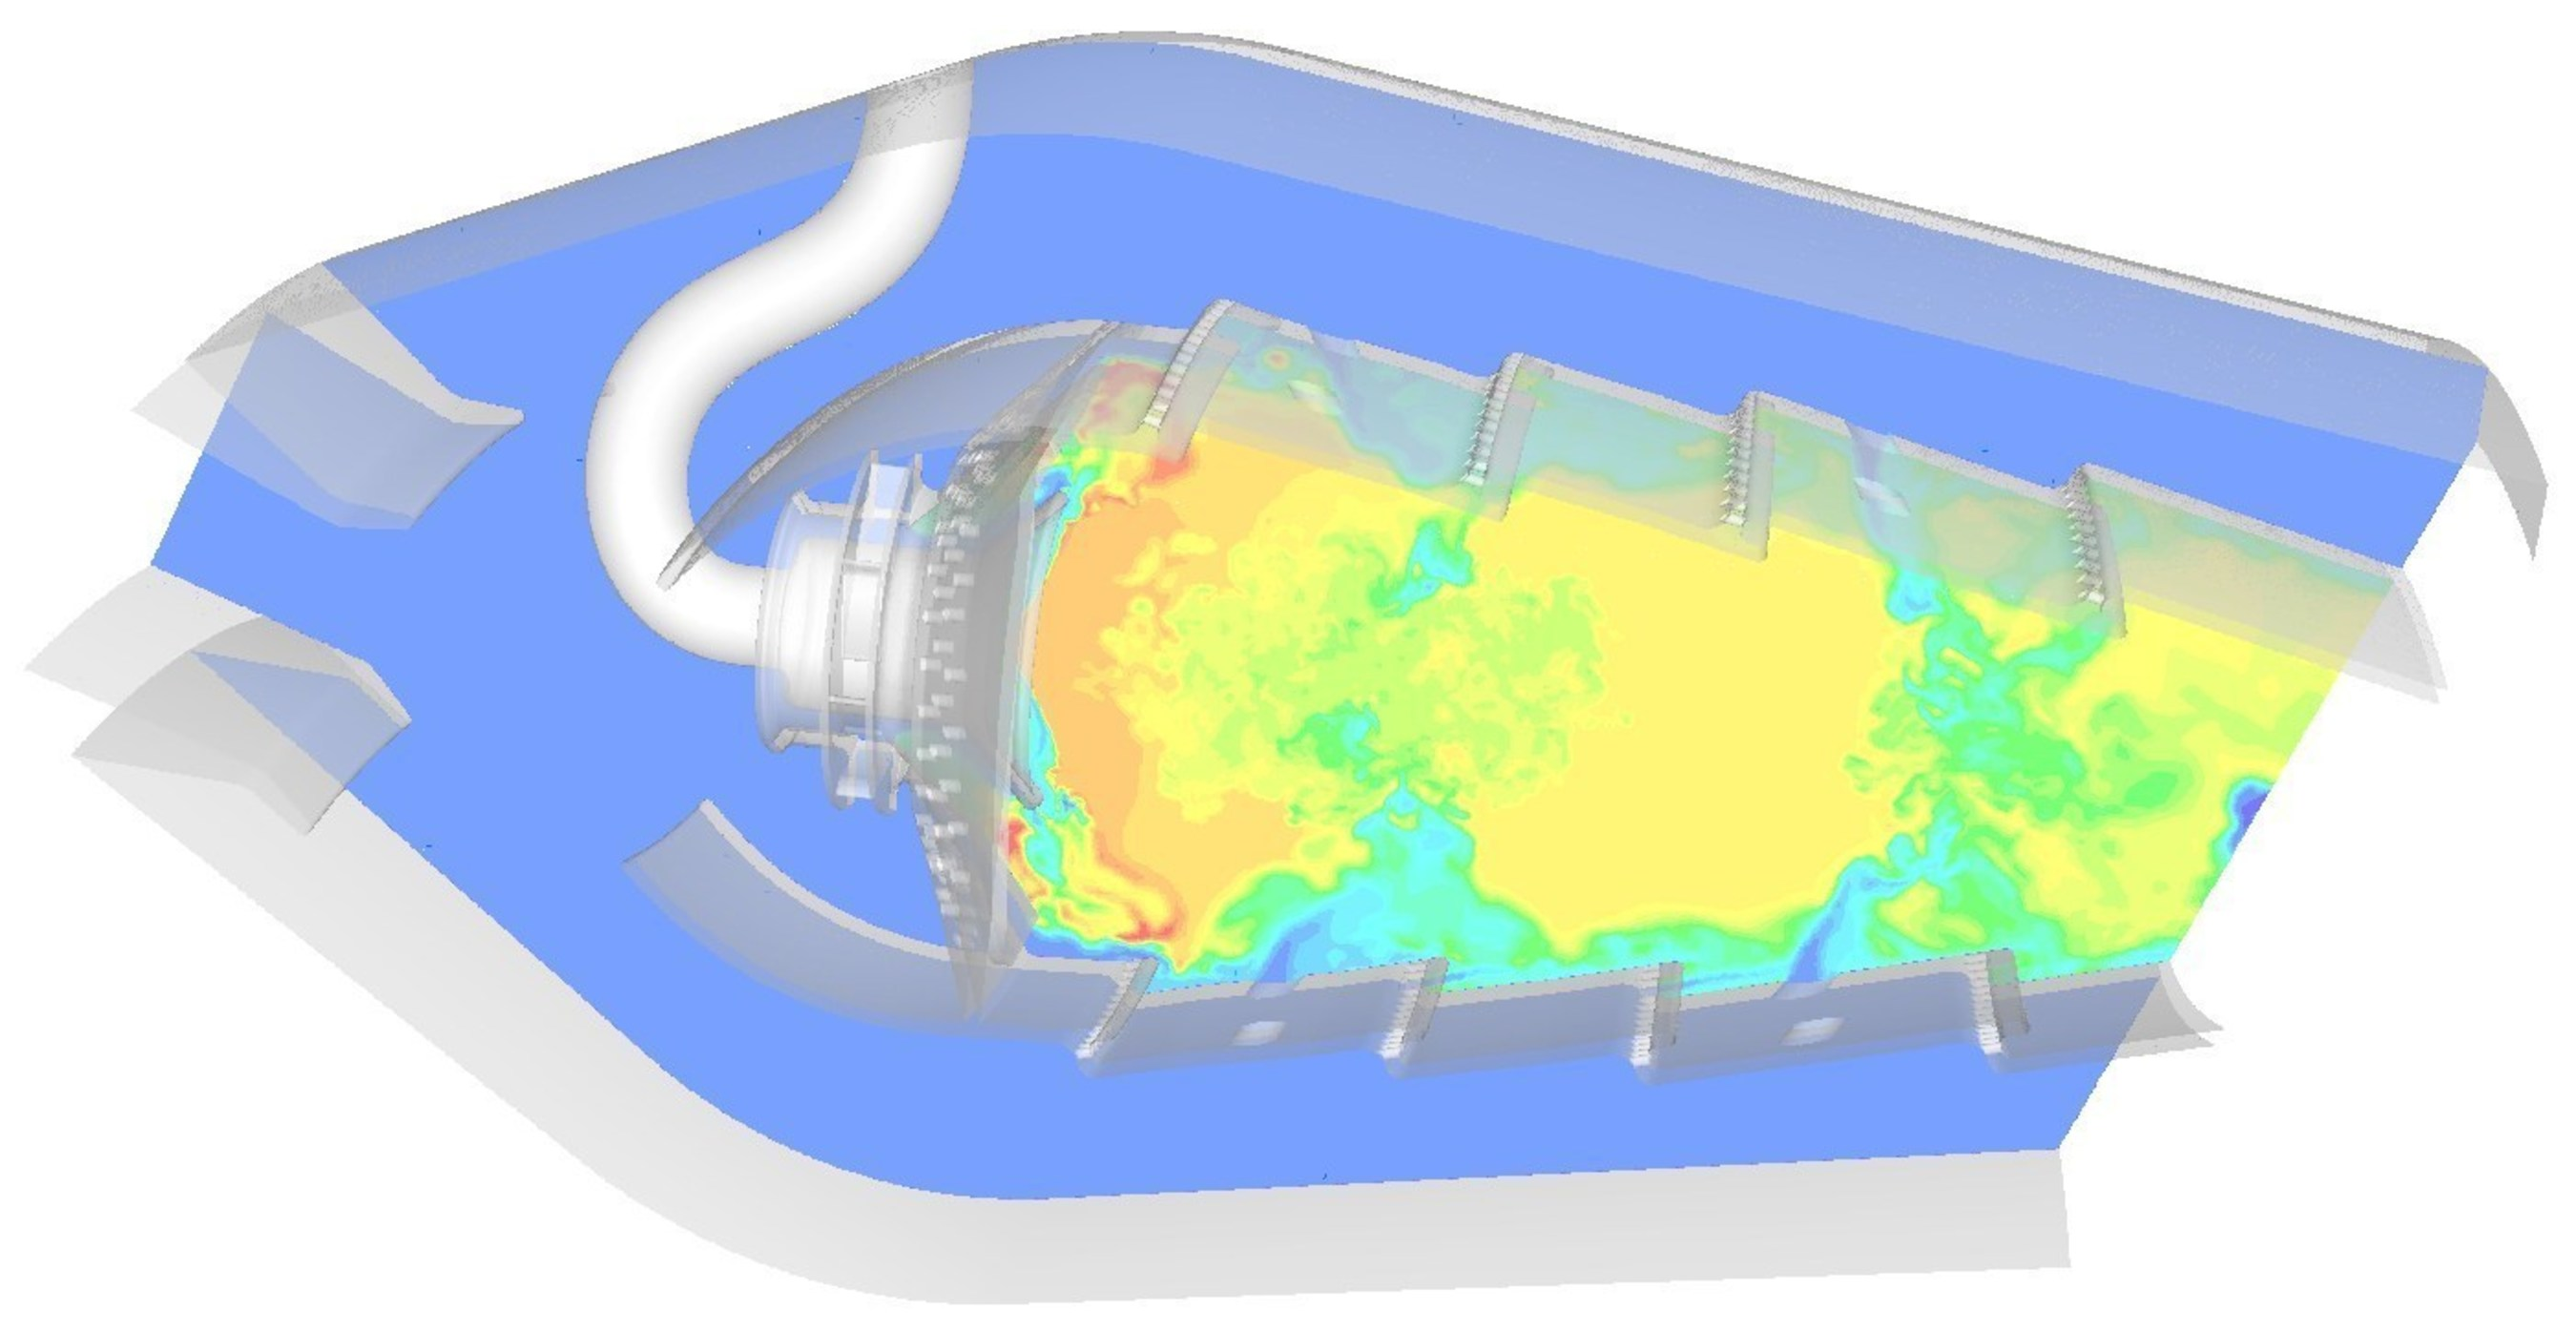 Gas turbine combustor model using ANSYS Fluent involving complex physics including transient, turbulent flow, mixing of multiple chemical species and turbulence-chemistry interaction.